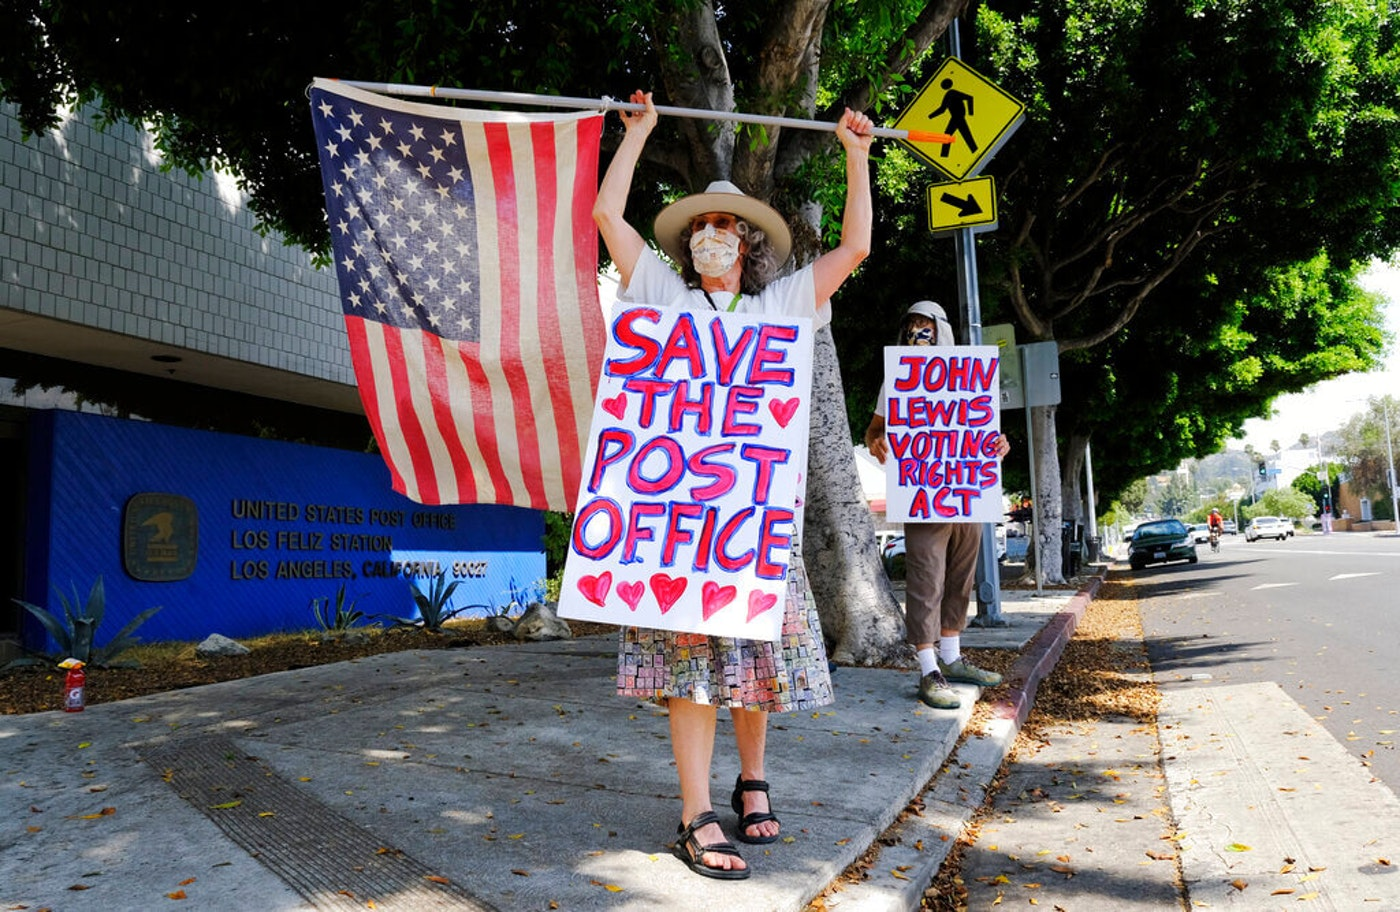 Erica Koesler, left, and David Haerle, both of Los Angeles, demonstrate outside a USPS post office, Saturday, Aug. 15, 2020, in the Los Feliz section of Los Angeles. The USPS has warned states coast to coast that it cannot guarantee all ballots cast by mail for the November election will arrive in time to be counted, even if mailed by state deadlines, raising the possibility that millions of voters could be disenfranchised.(AP Photo/Chris Pizzello)